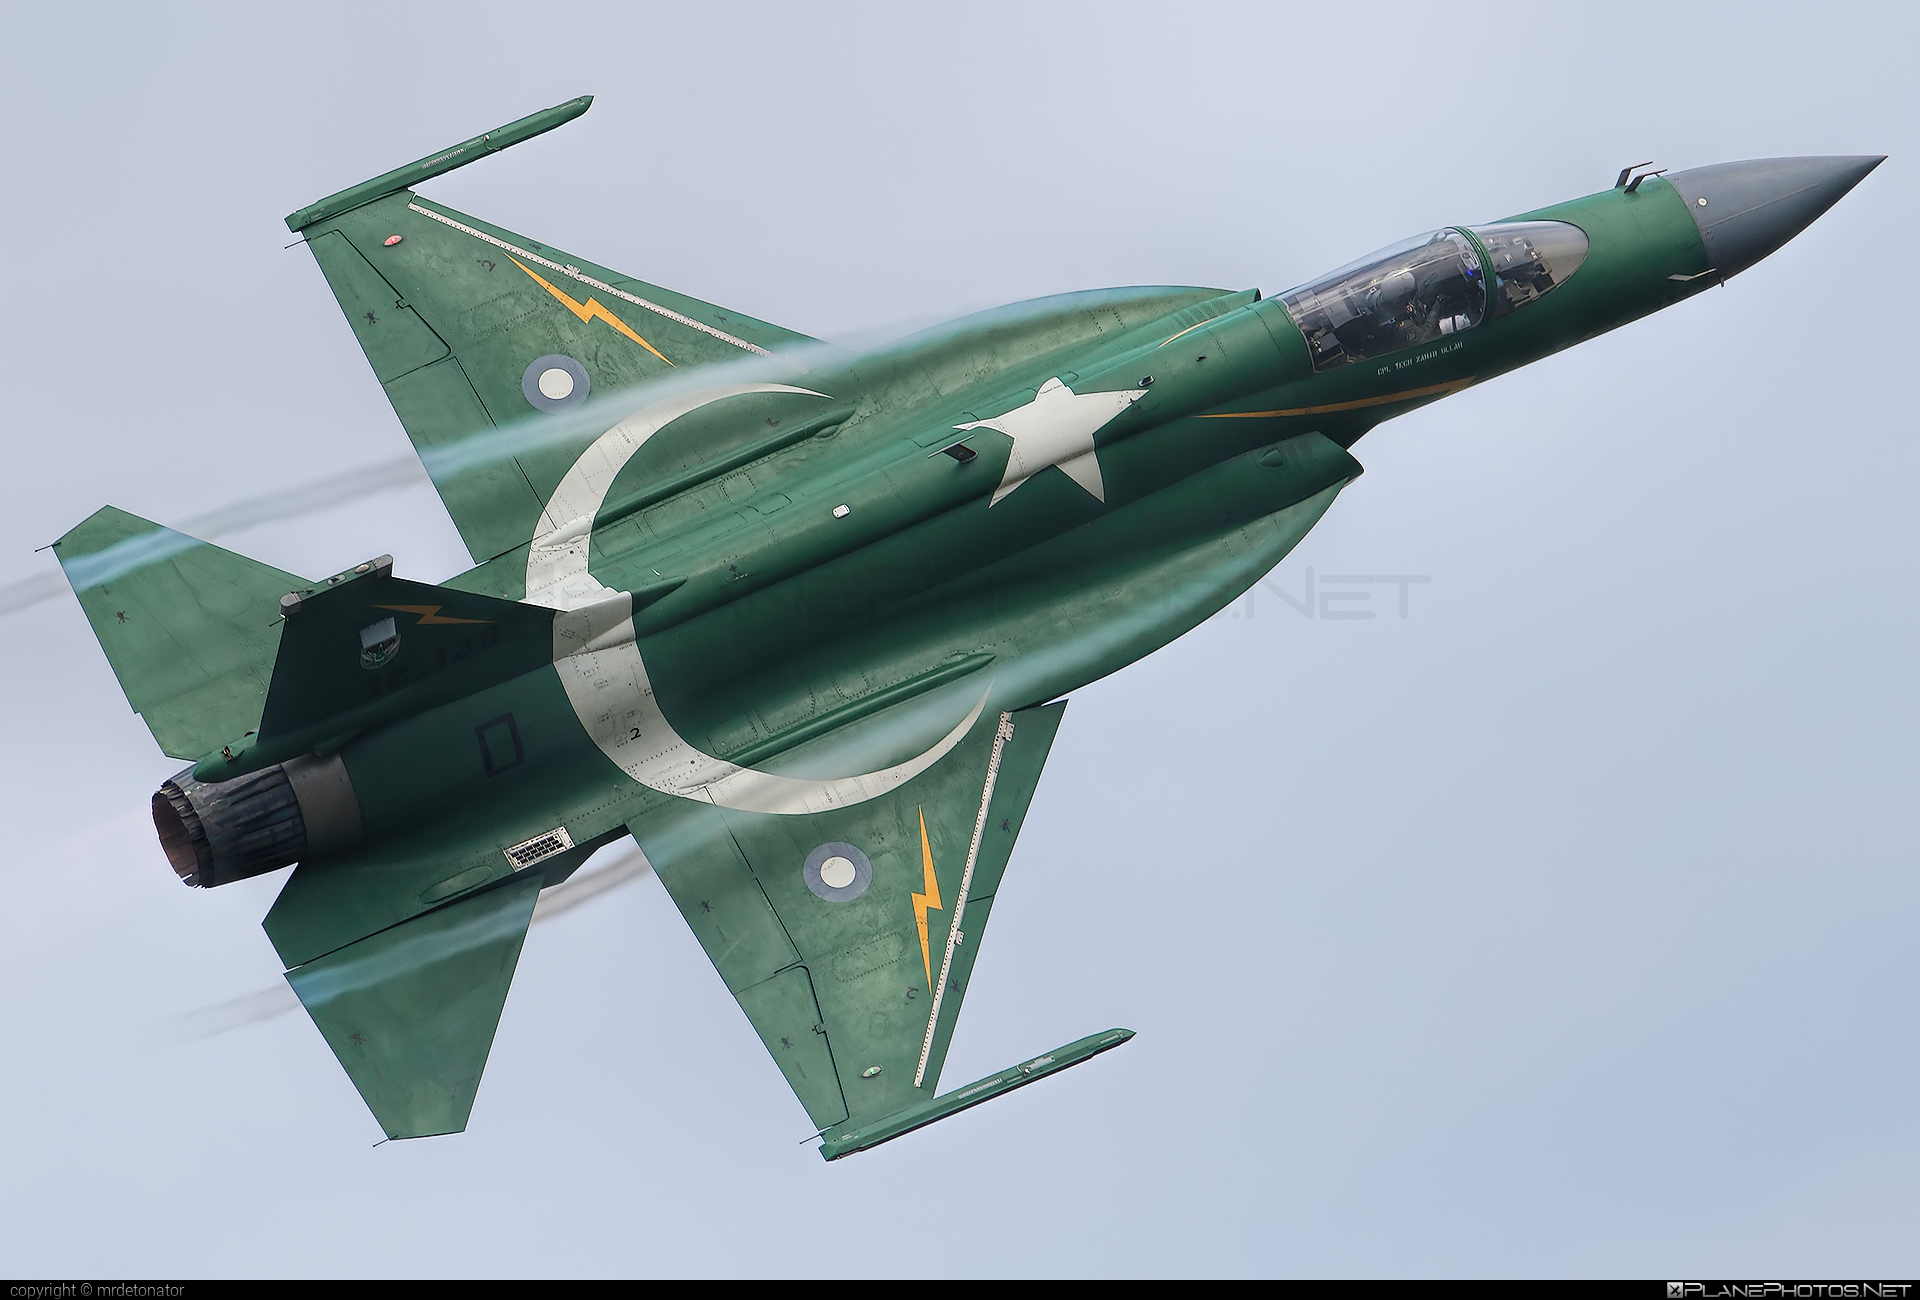 PAC JF-17 Thunder - 12-138 operated by Pakistan Air Force #jf17thunder #pac #pacjf17thunder #pakistanaeronauticalcomplex #pakistanairforce #radomairshow #radomairshow2018